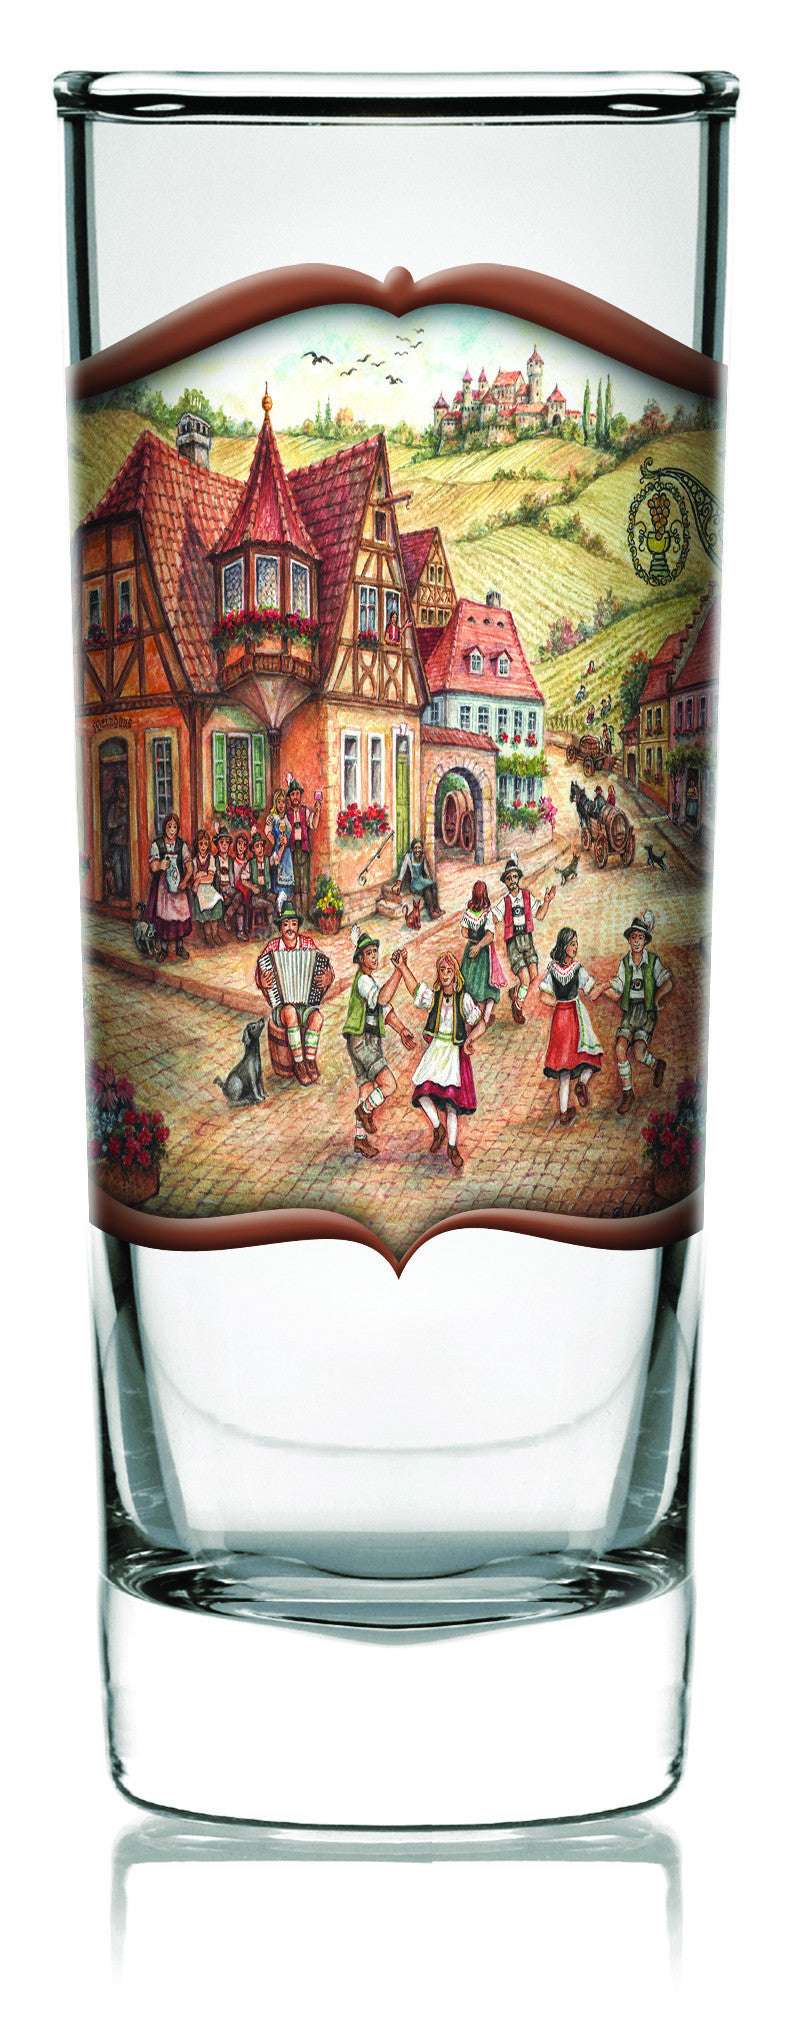 Oktoberfest Shooter Village Dancers Clear - Alcohol, Barware, Clear, Collectibles, Drinkware, Frosted, German, Germany, Glass, Home & Garden, PS- Oktoberfest Party Favors, PS-Party Favors, PS-Party Favors German, Shot Glasses, Shots-Glass, Tableware - 2